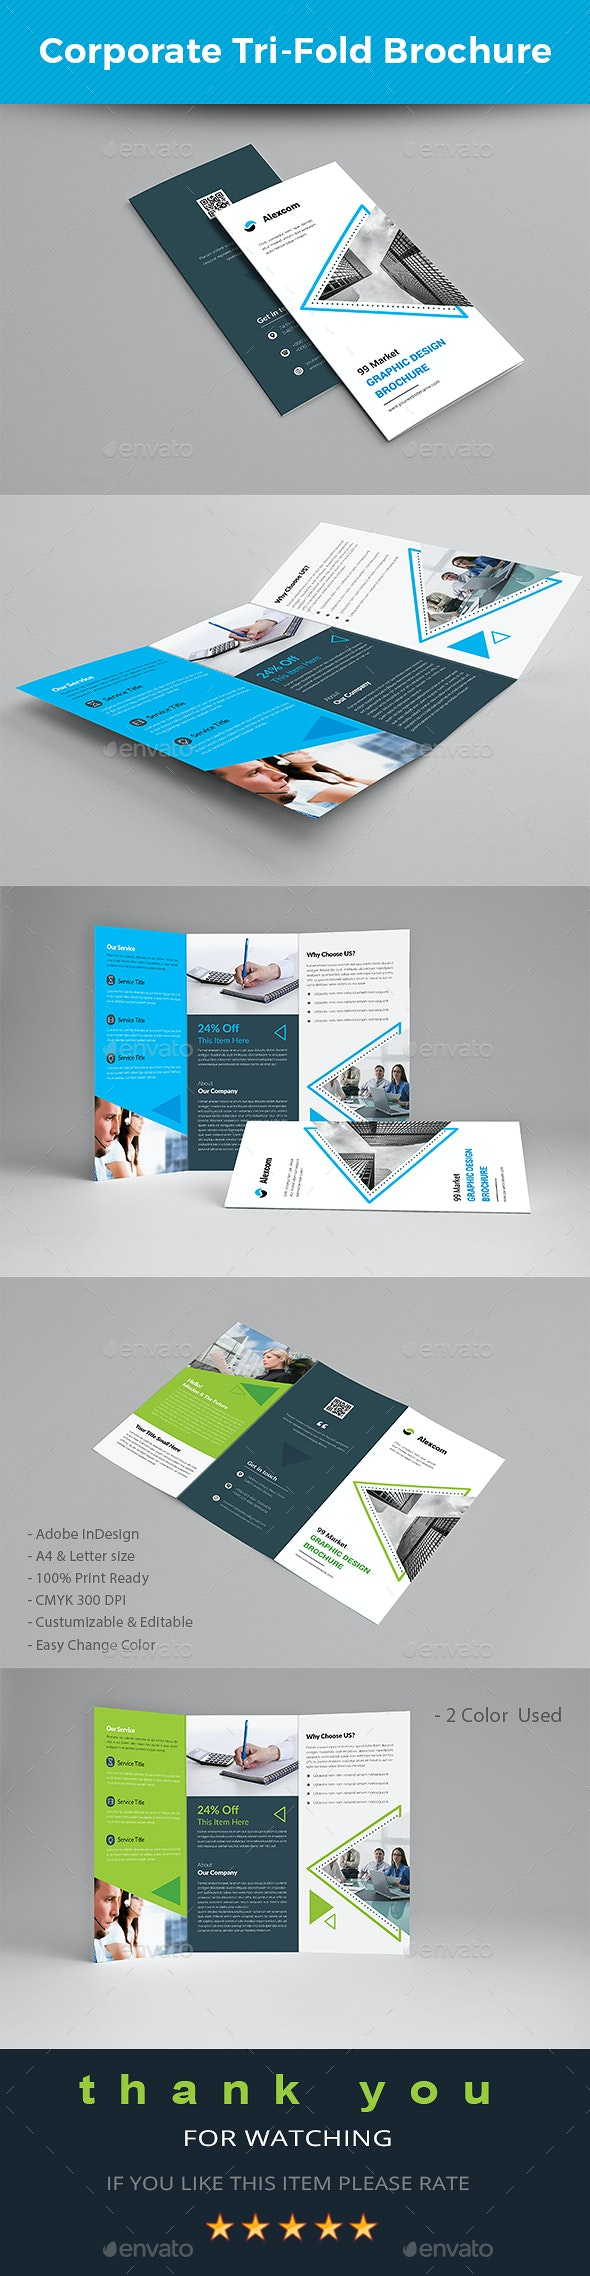 Corporate Tri-fold Brochure - Brochures Print Templates